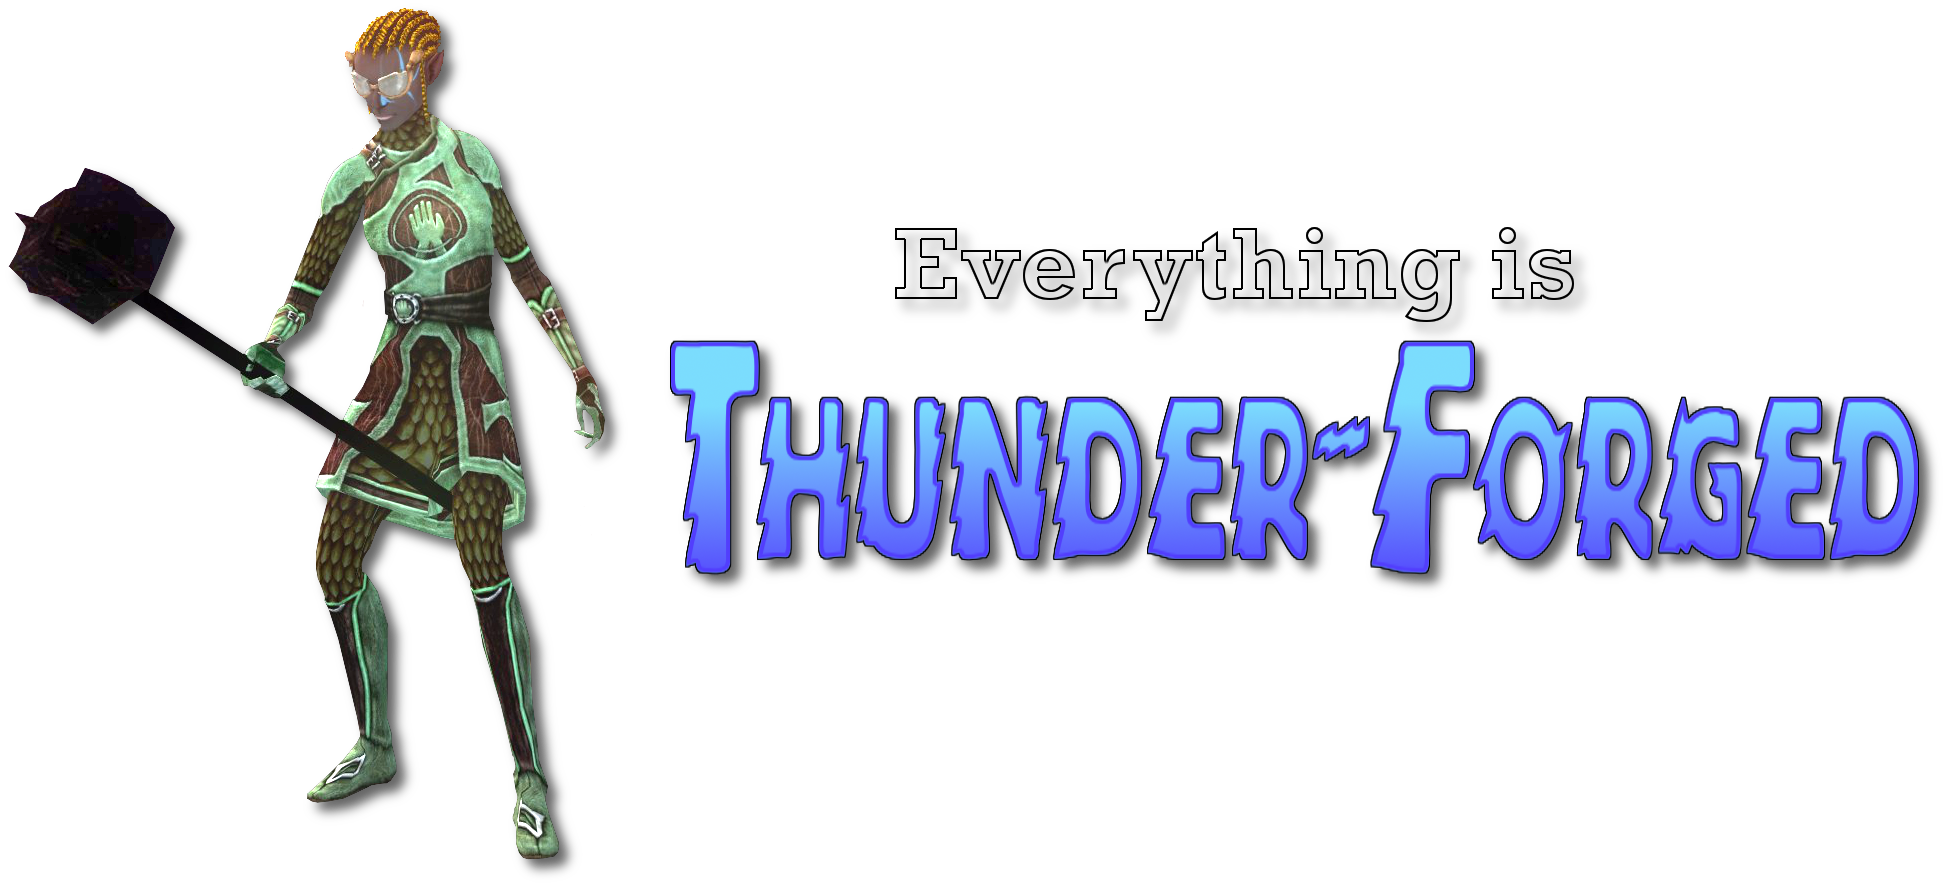 Everything is Thunder-Forged